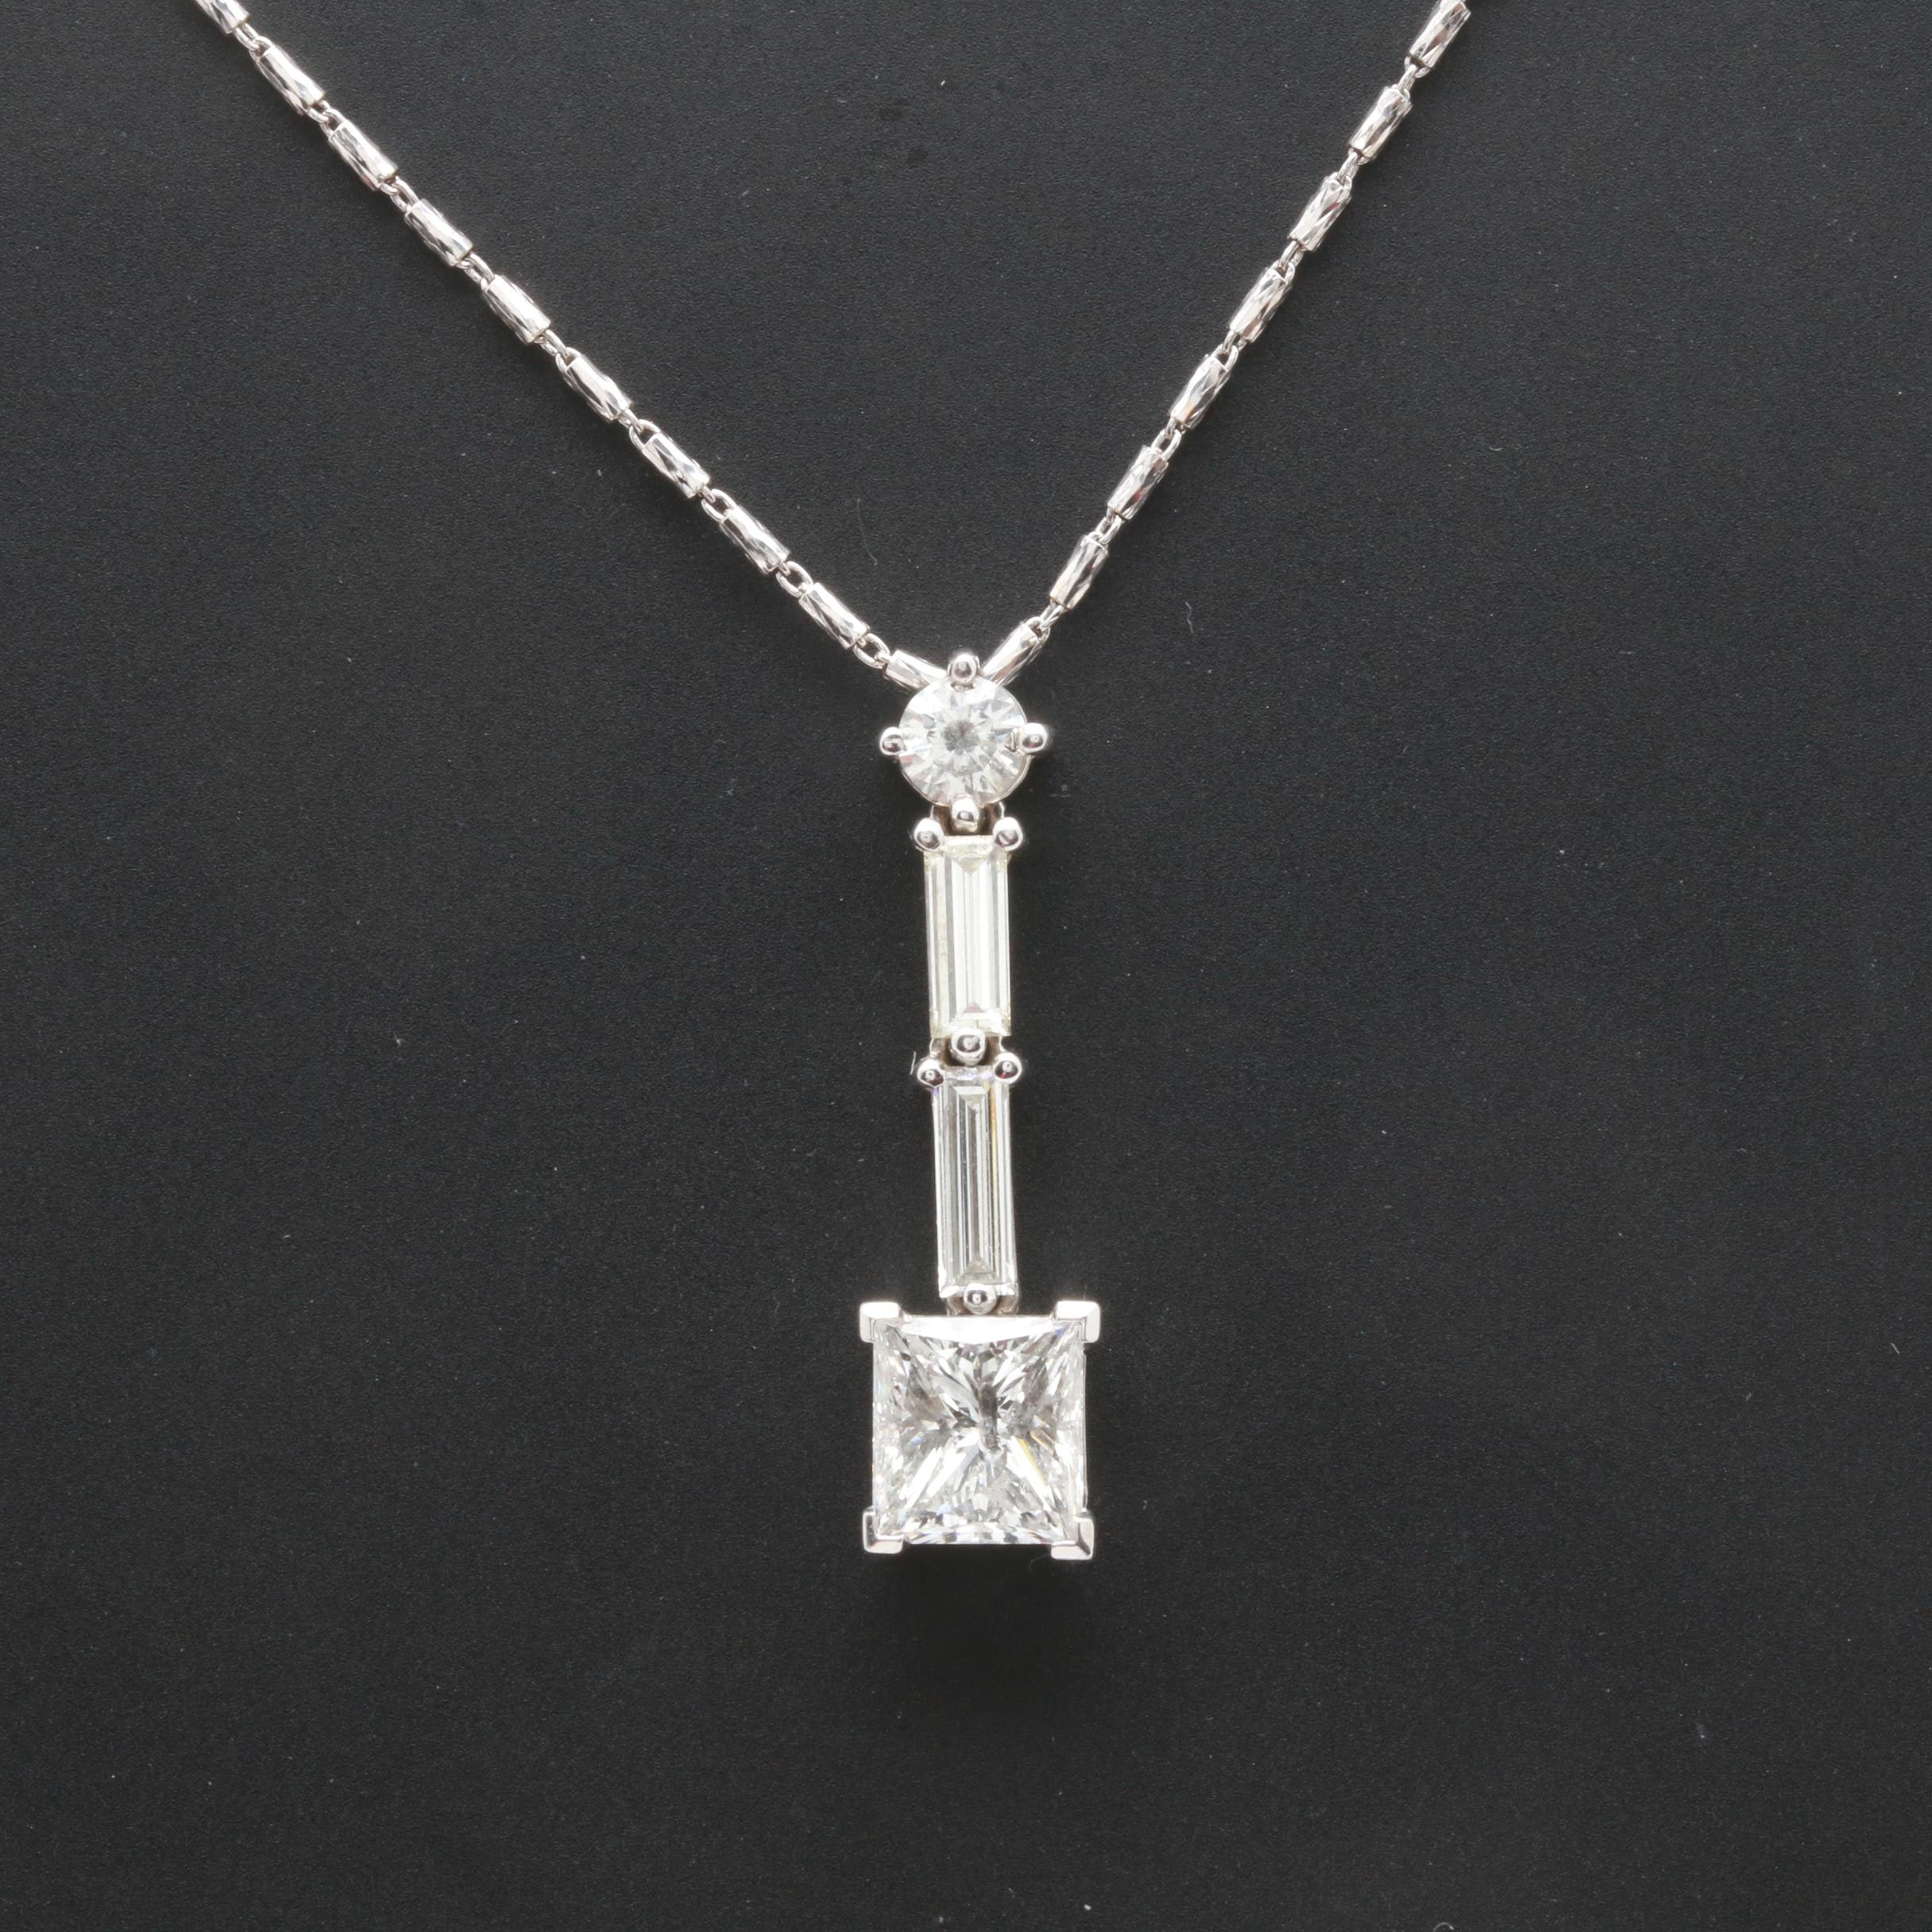 14K and 18K White Gold 2.60 CTW Diamond Pendant Necklace